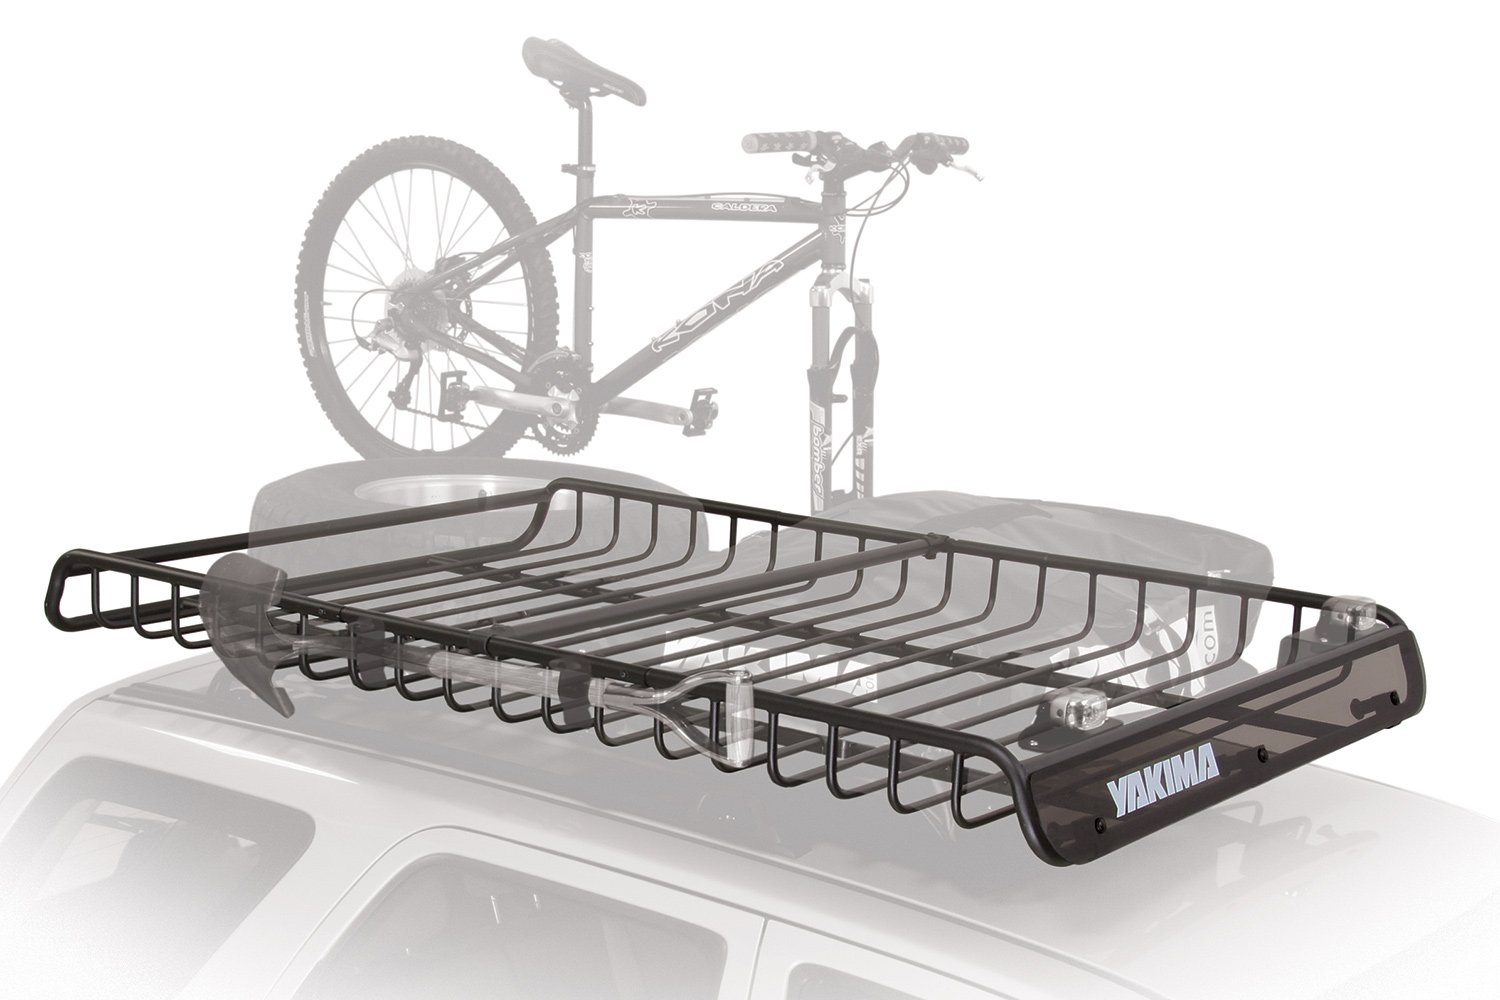 is about yakima australian hyundai racks iload made itm loading image details rack krs roof